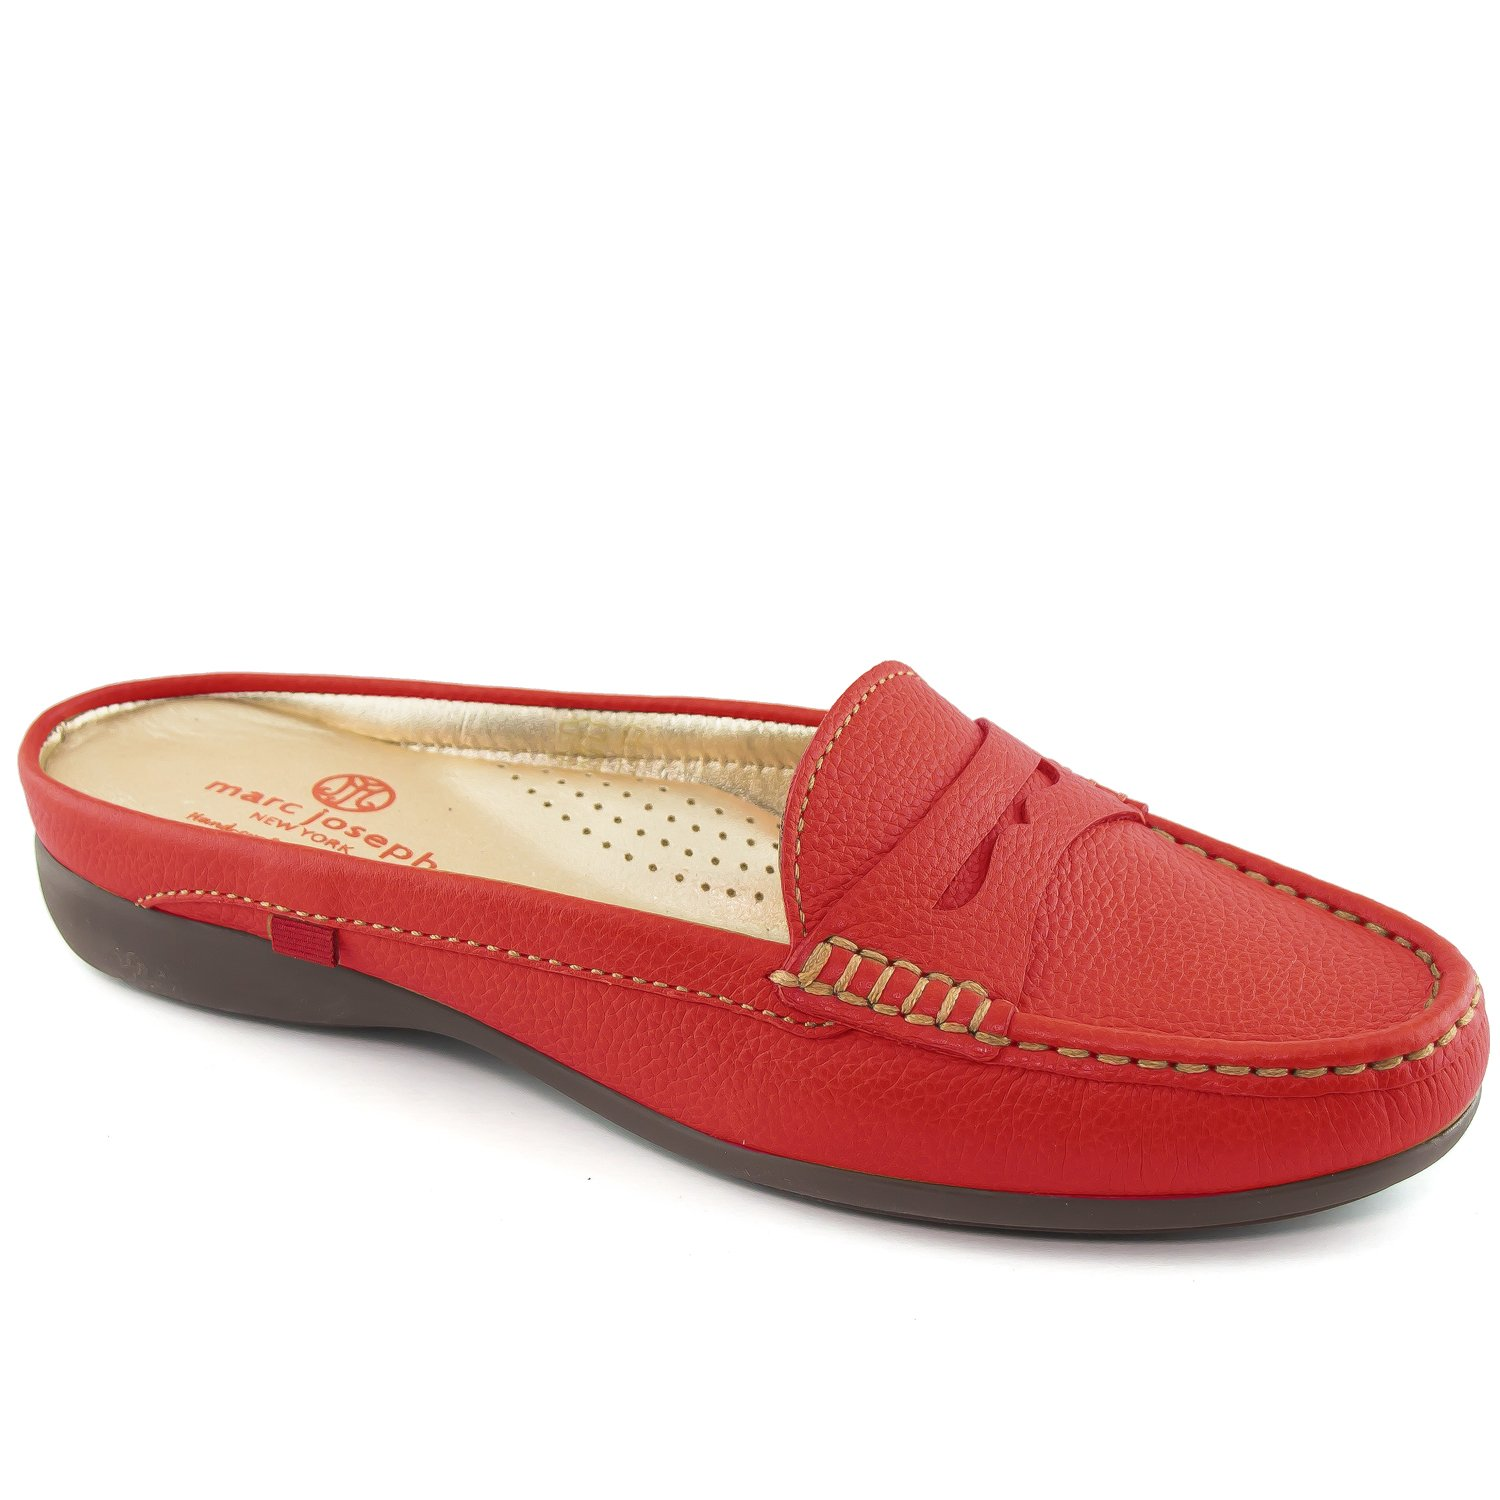 Marc Joseph New York Women's Union Mule Red Grainy Slip On 6